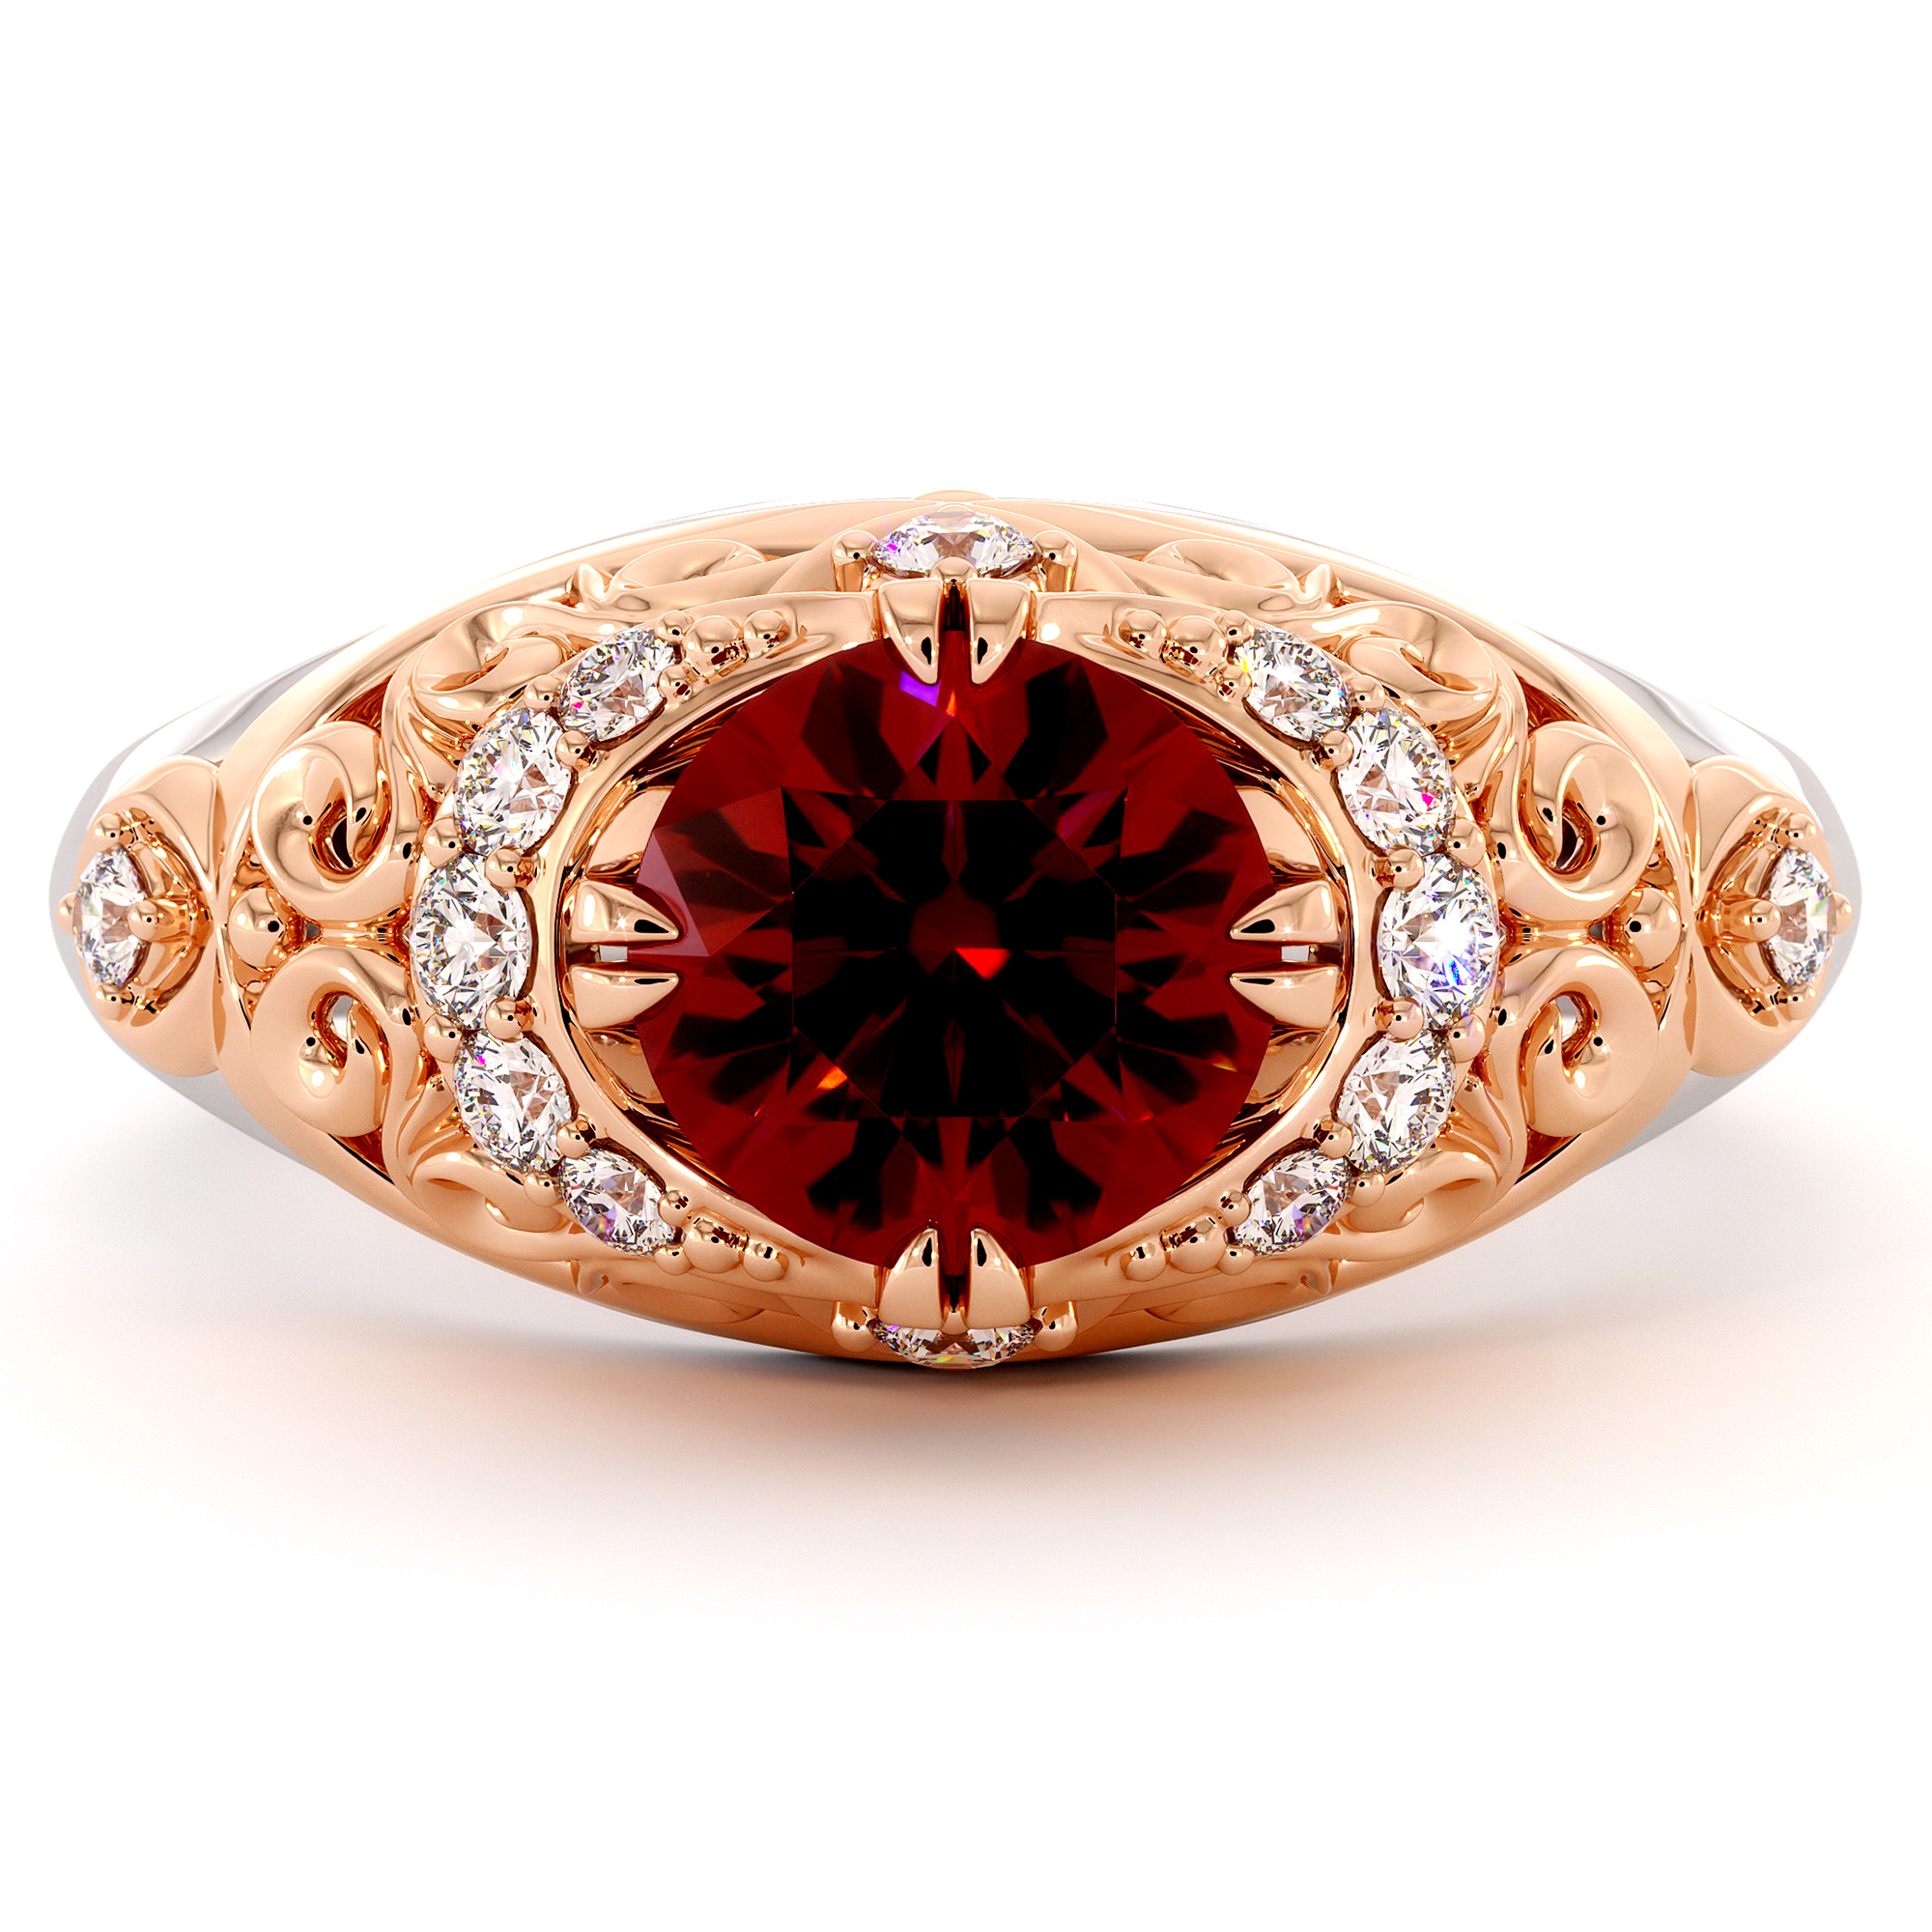 Halo Diamonds Ruby Engagement Ring Modern 2 Toned Gold Filigree Ring Queenly Gemstone Engagement Ring